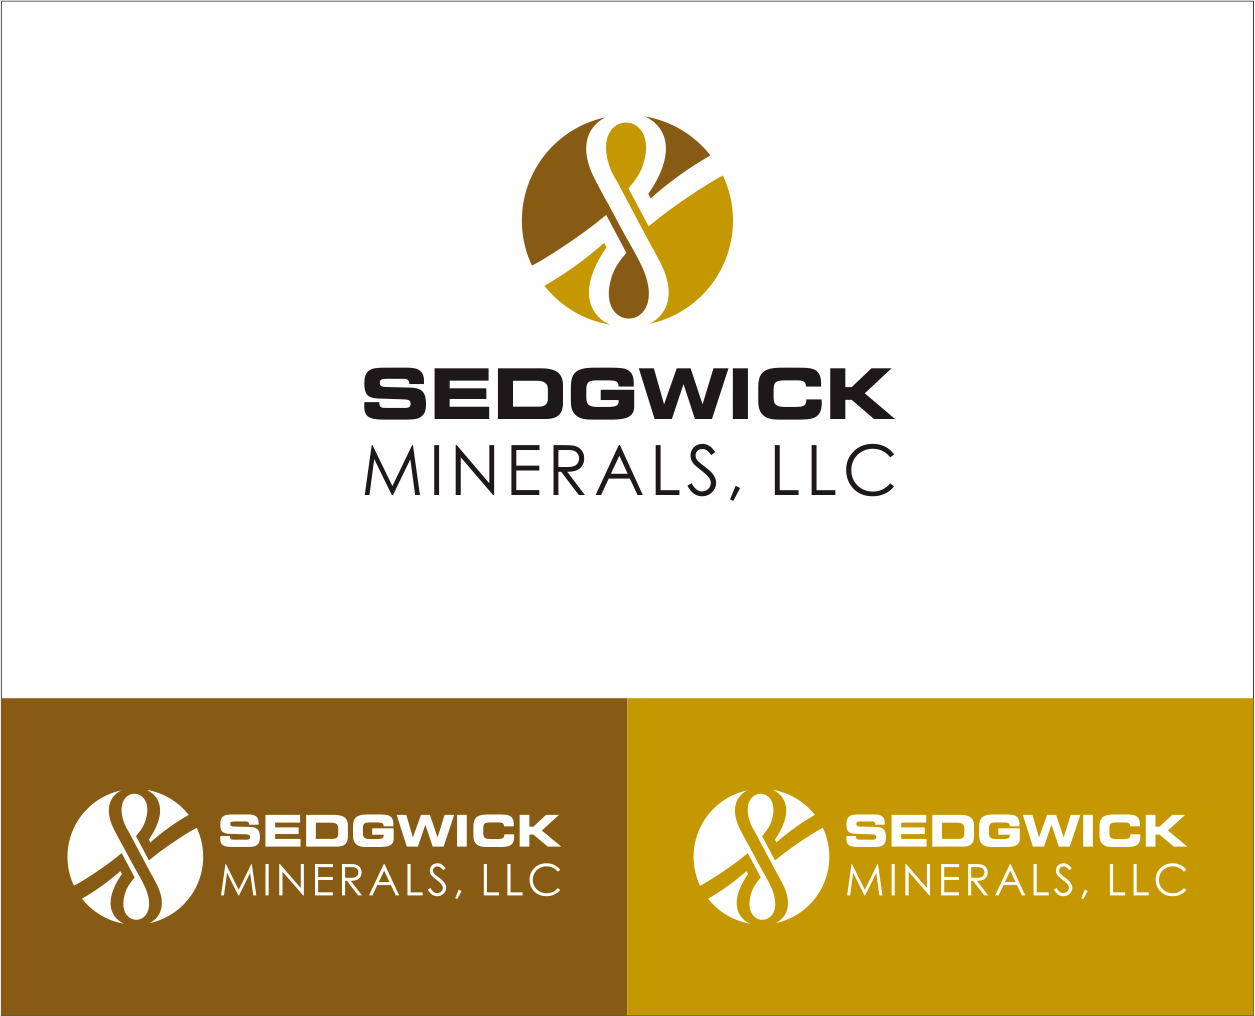 Logo Design by Armada Jamaluddin - Entry No. 71 in the Logo Design Contest Inspiring Logo Design for Sedgwick Minerals, LLC.